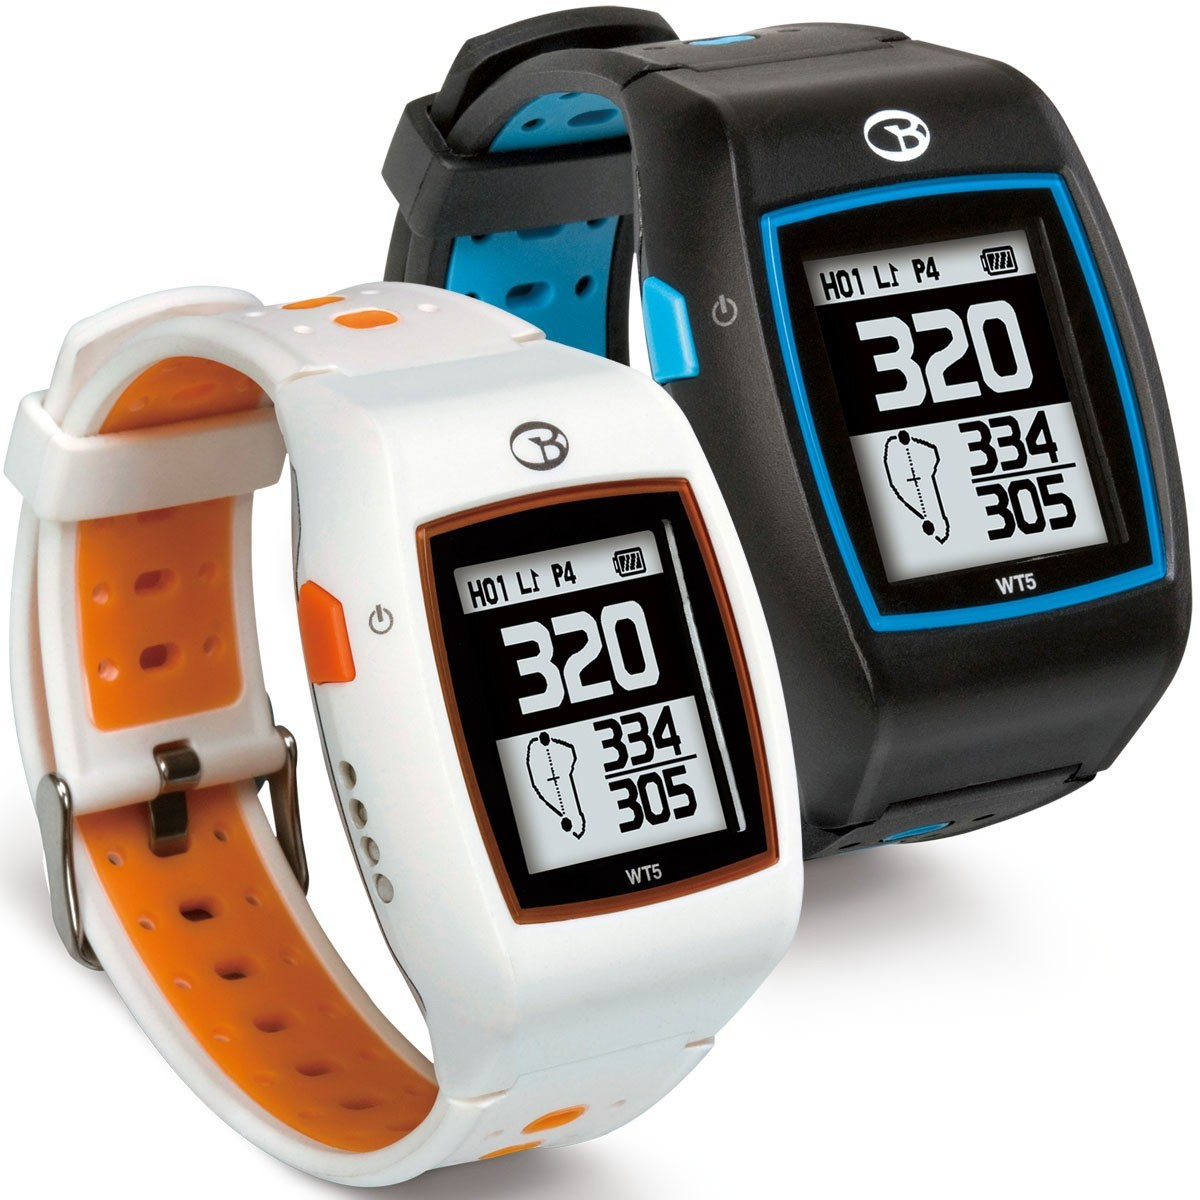 golfbuddy wt5 golf gps watch golf gps and range finders accessories golf. Black Bedroom Furniture Sets. Home Design Ideas